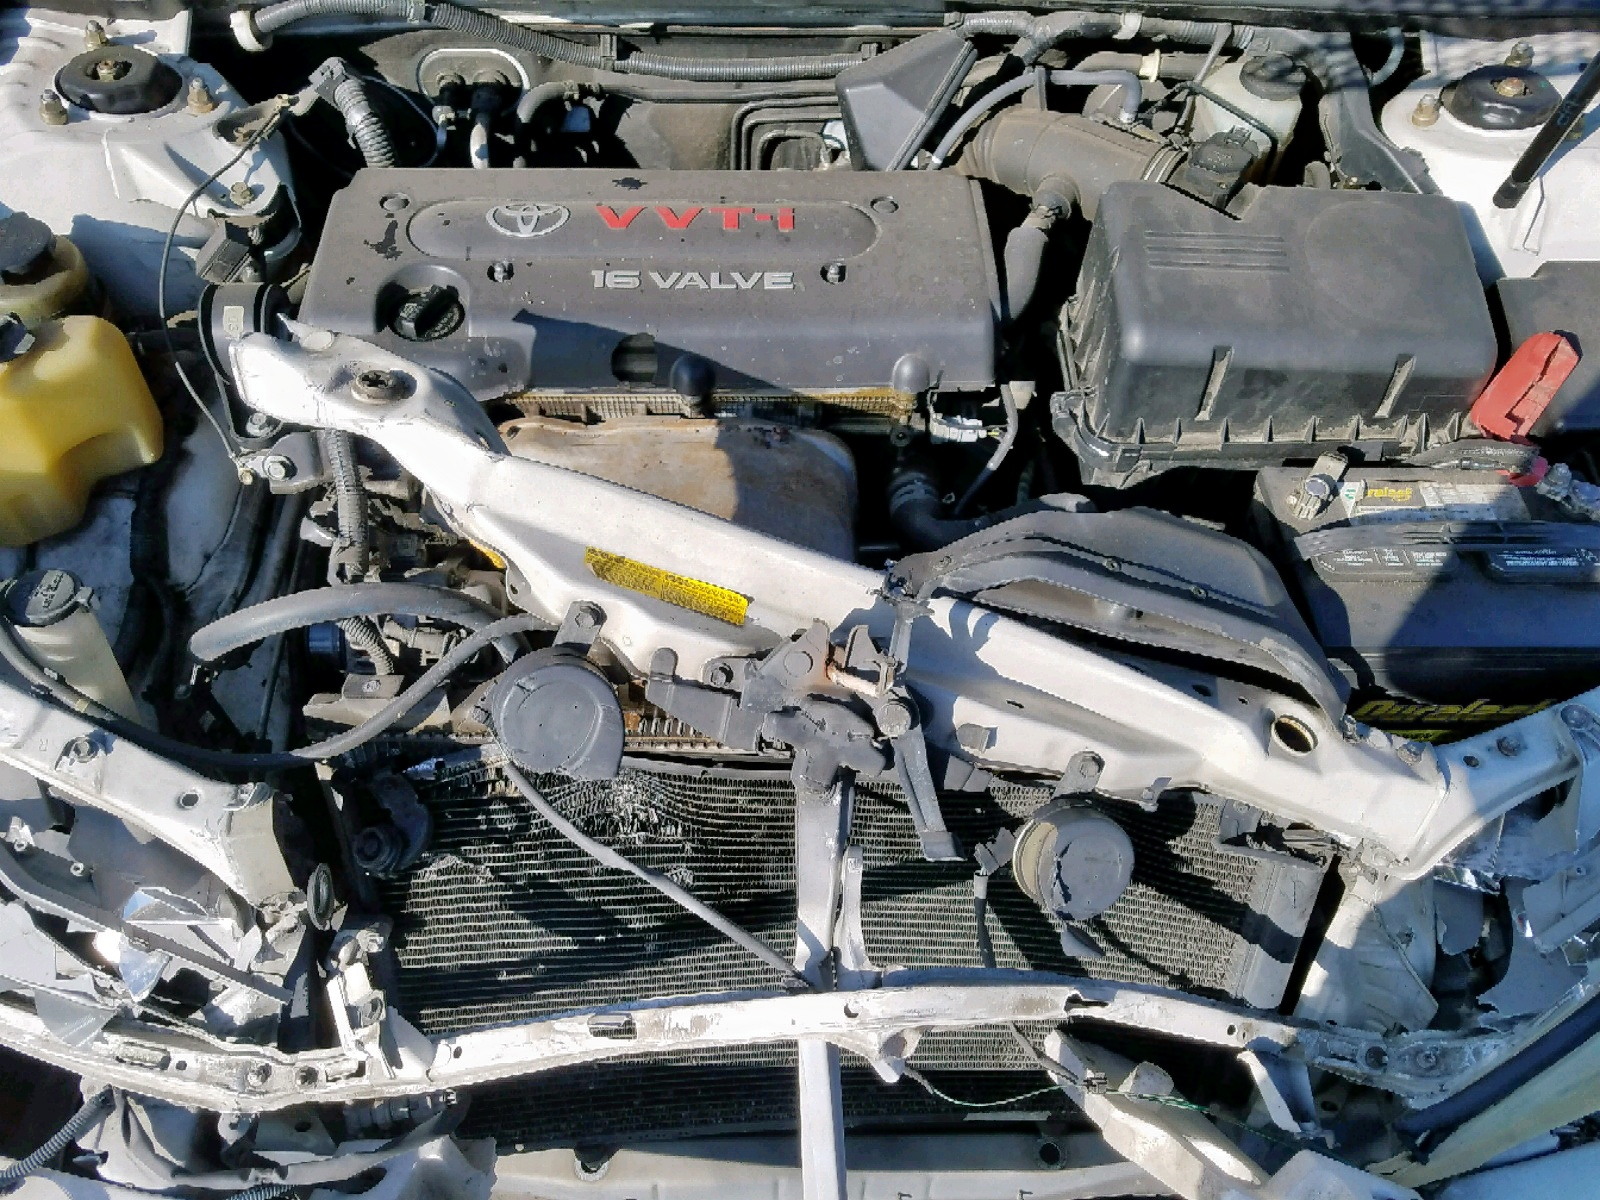 JTDBE32K520060336 - 2002 Toyota Camry Le 2.4L inside view